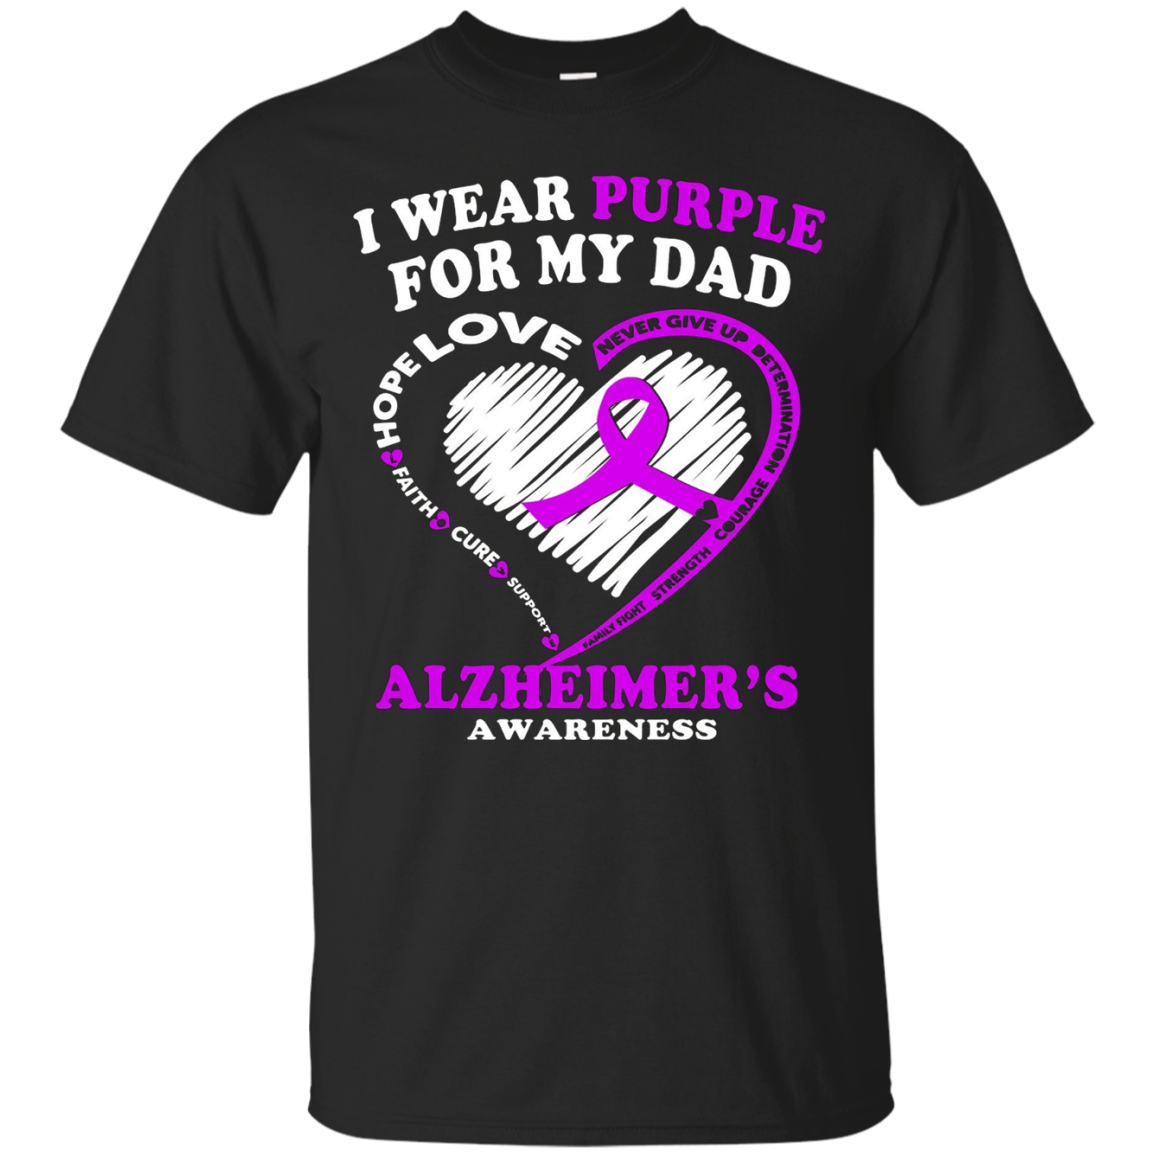 Alzheimers Awareness Shirt - I Wear Purple For My Dad